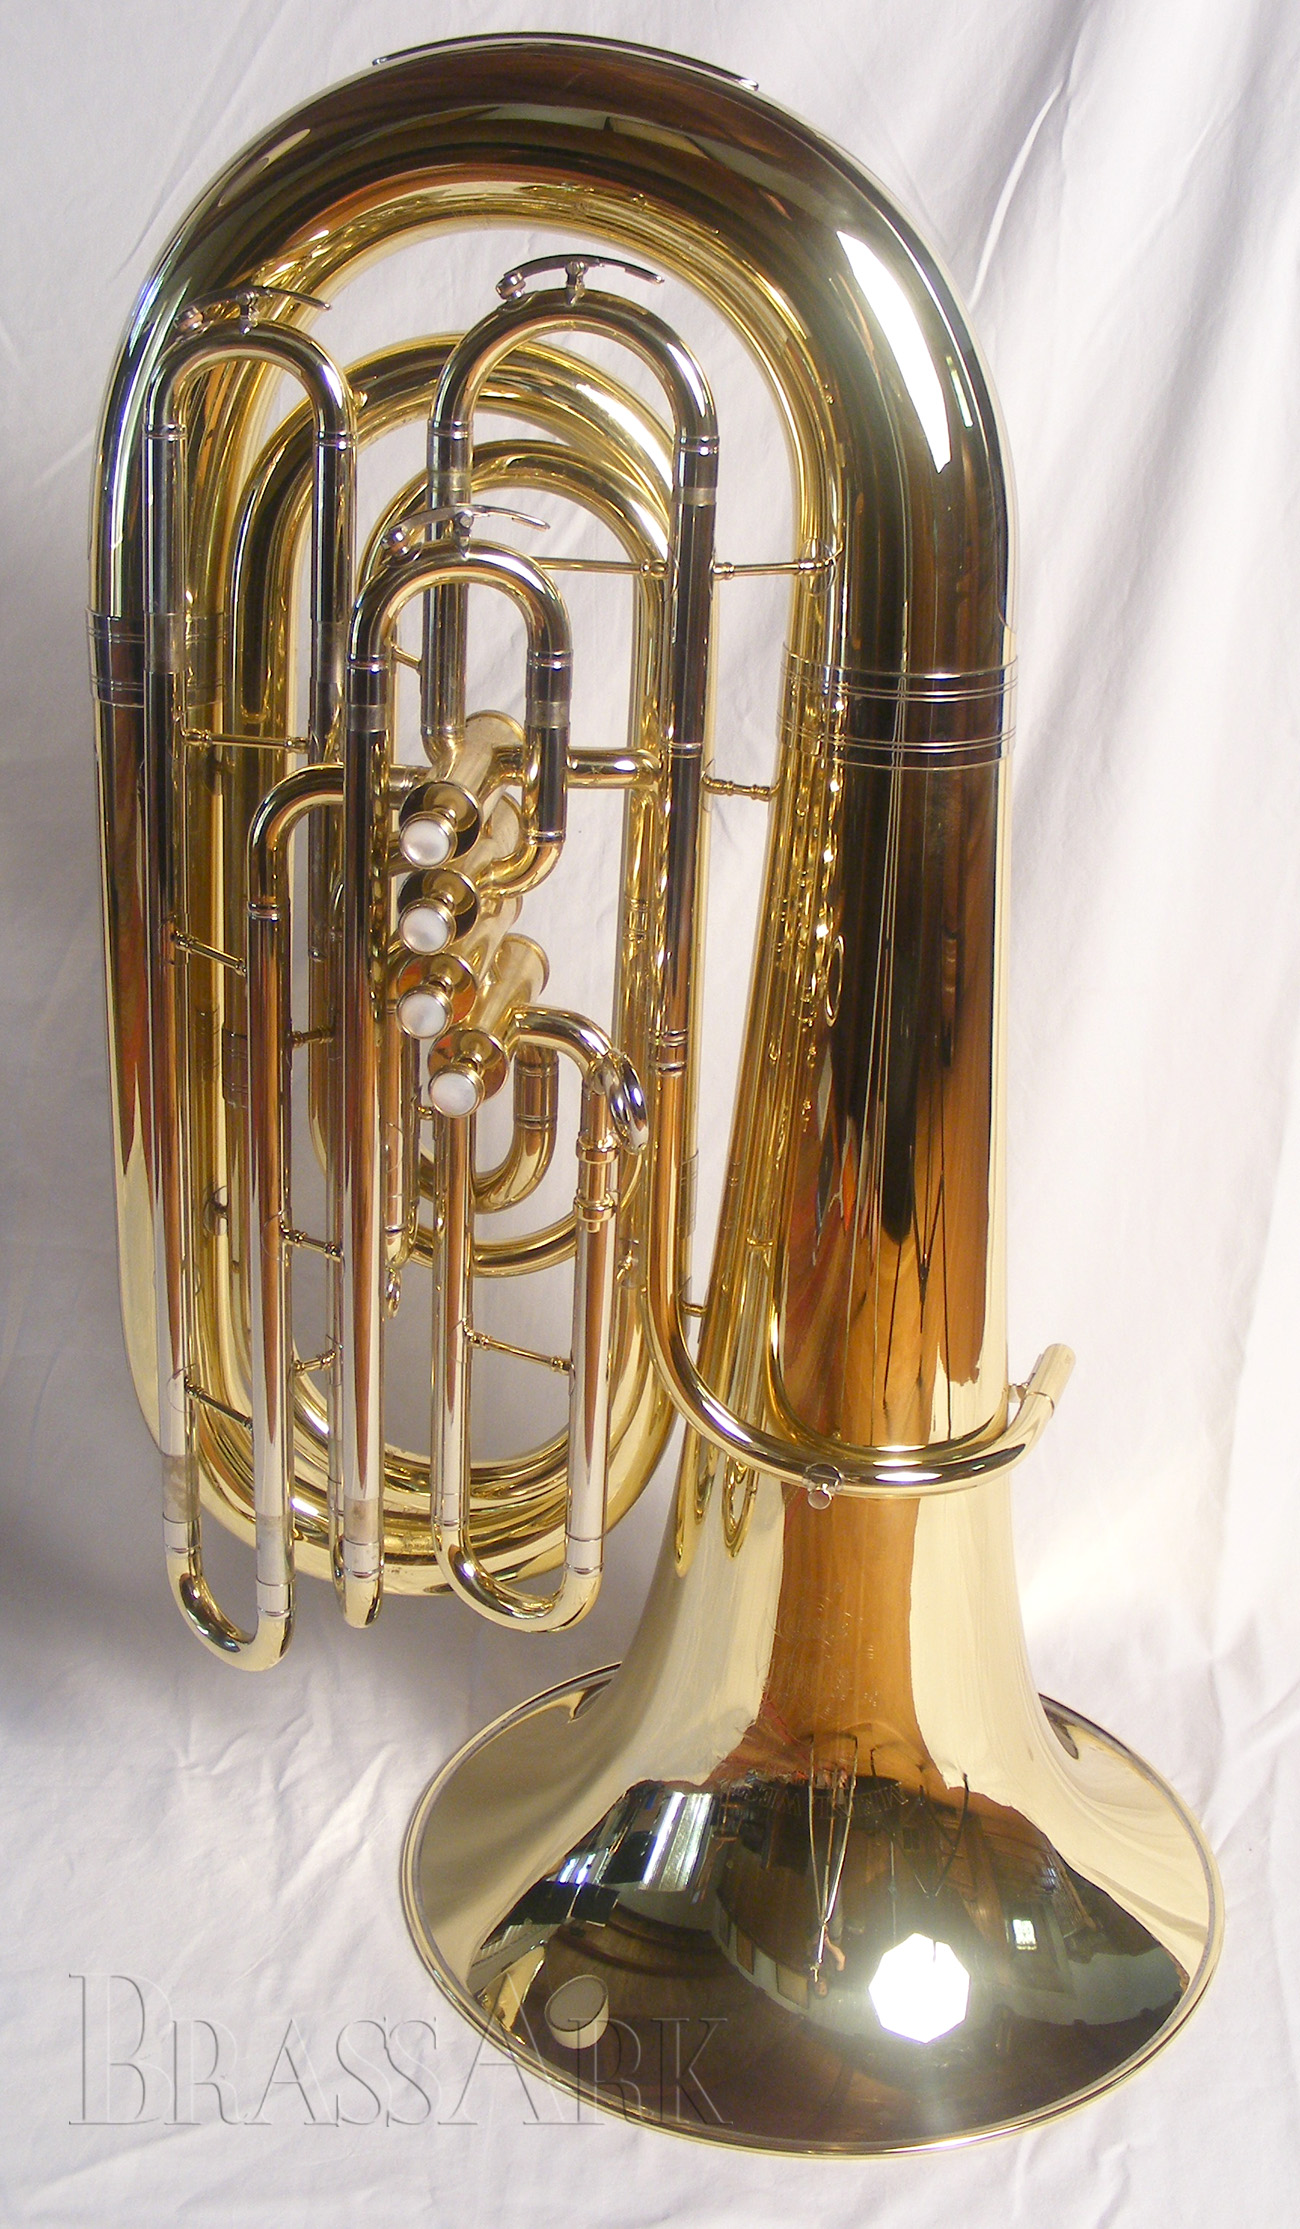 Brass Ark - For Sale